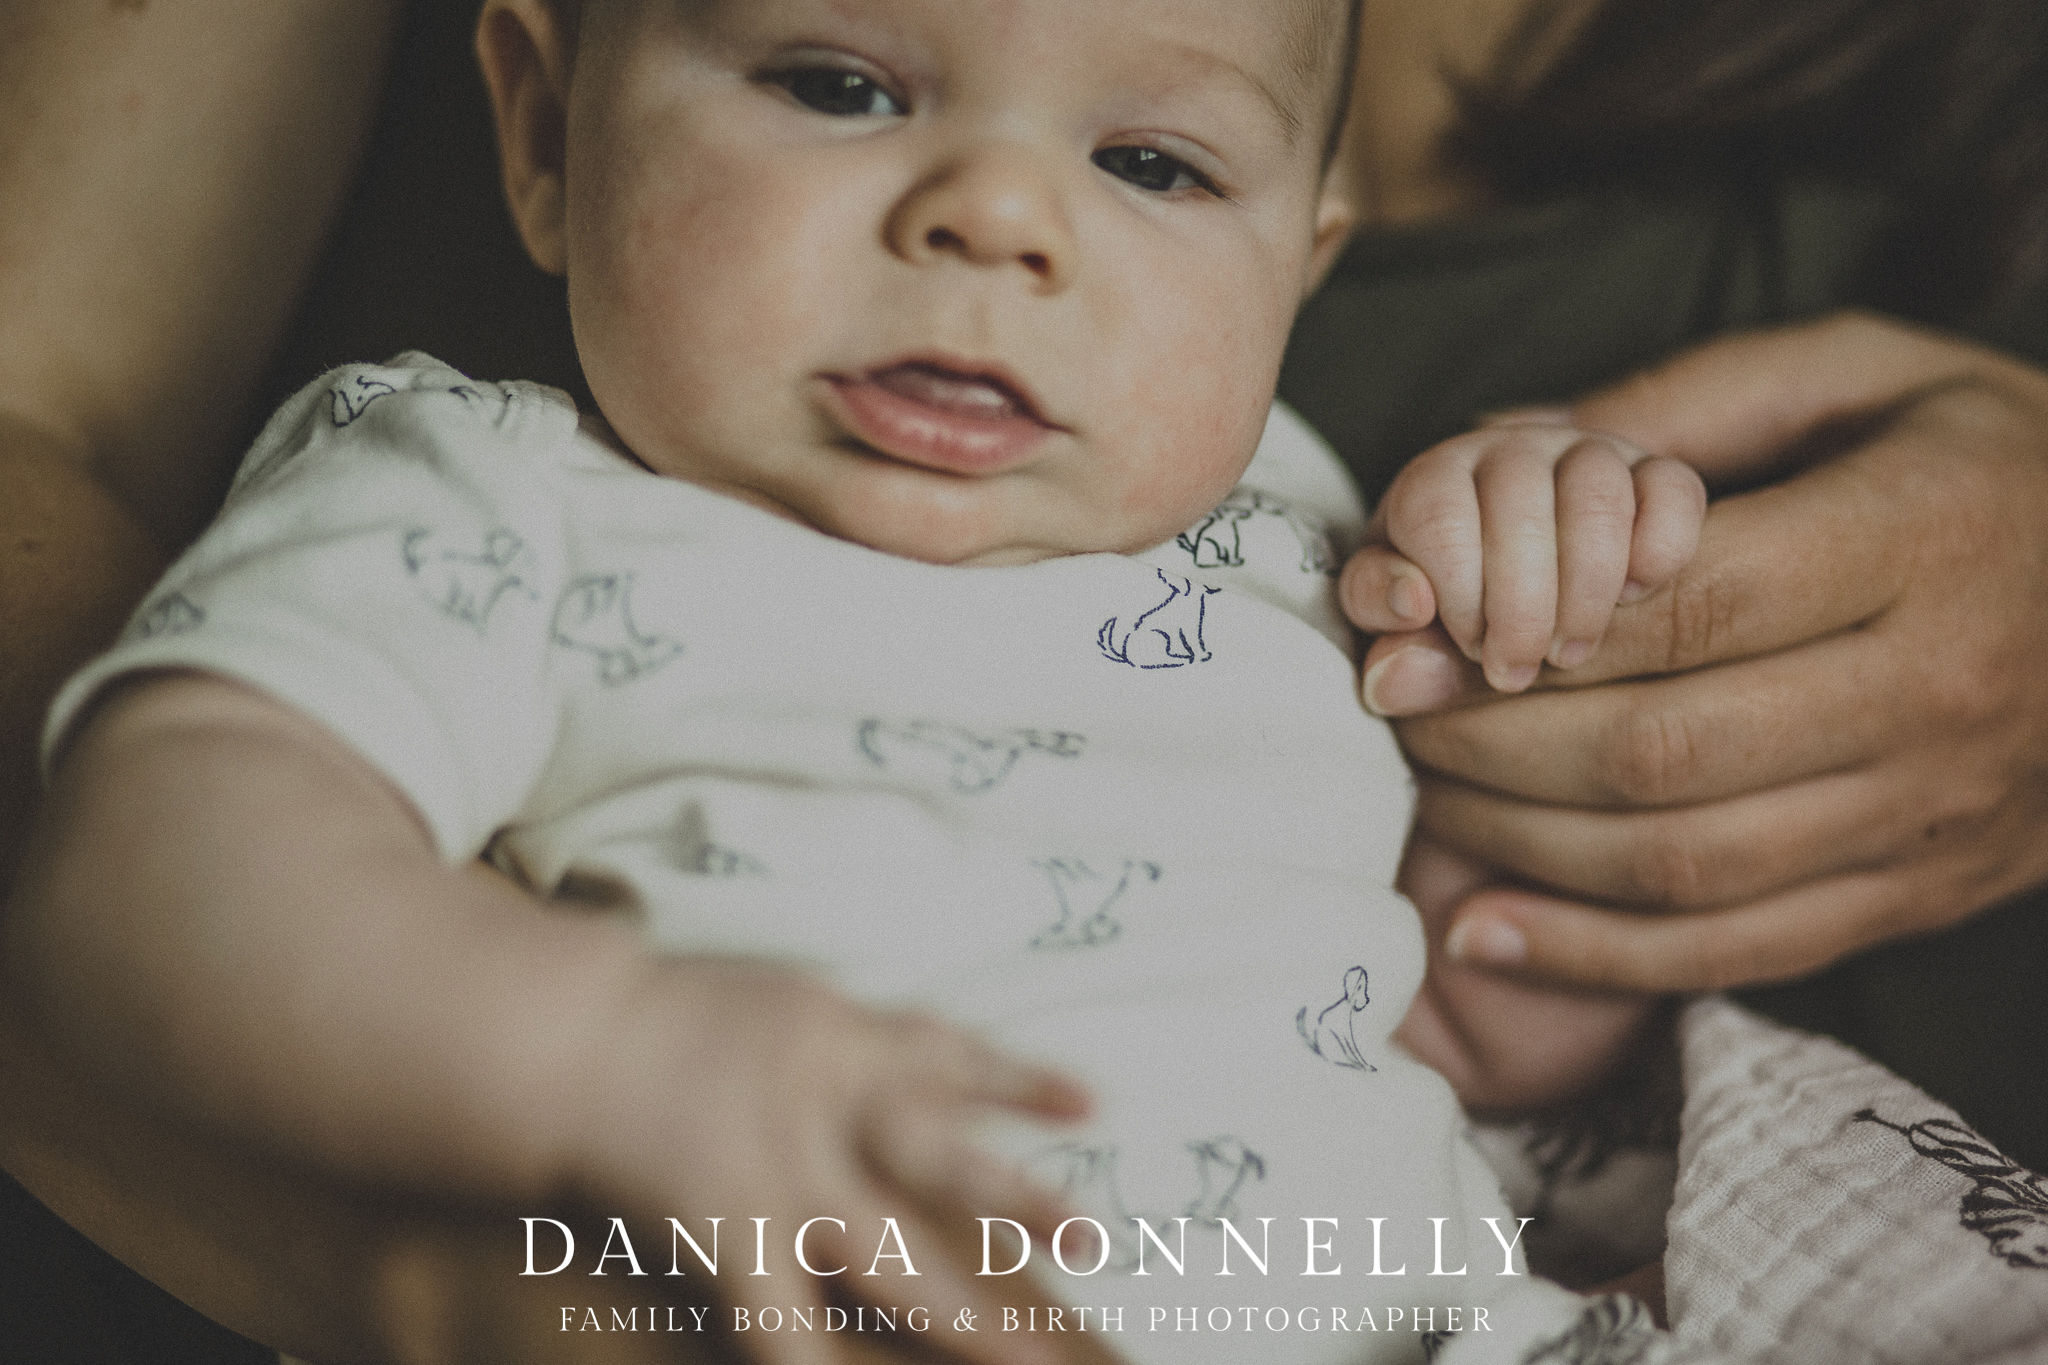 Why hire a birth photographer?